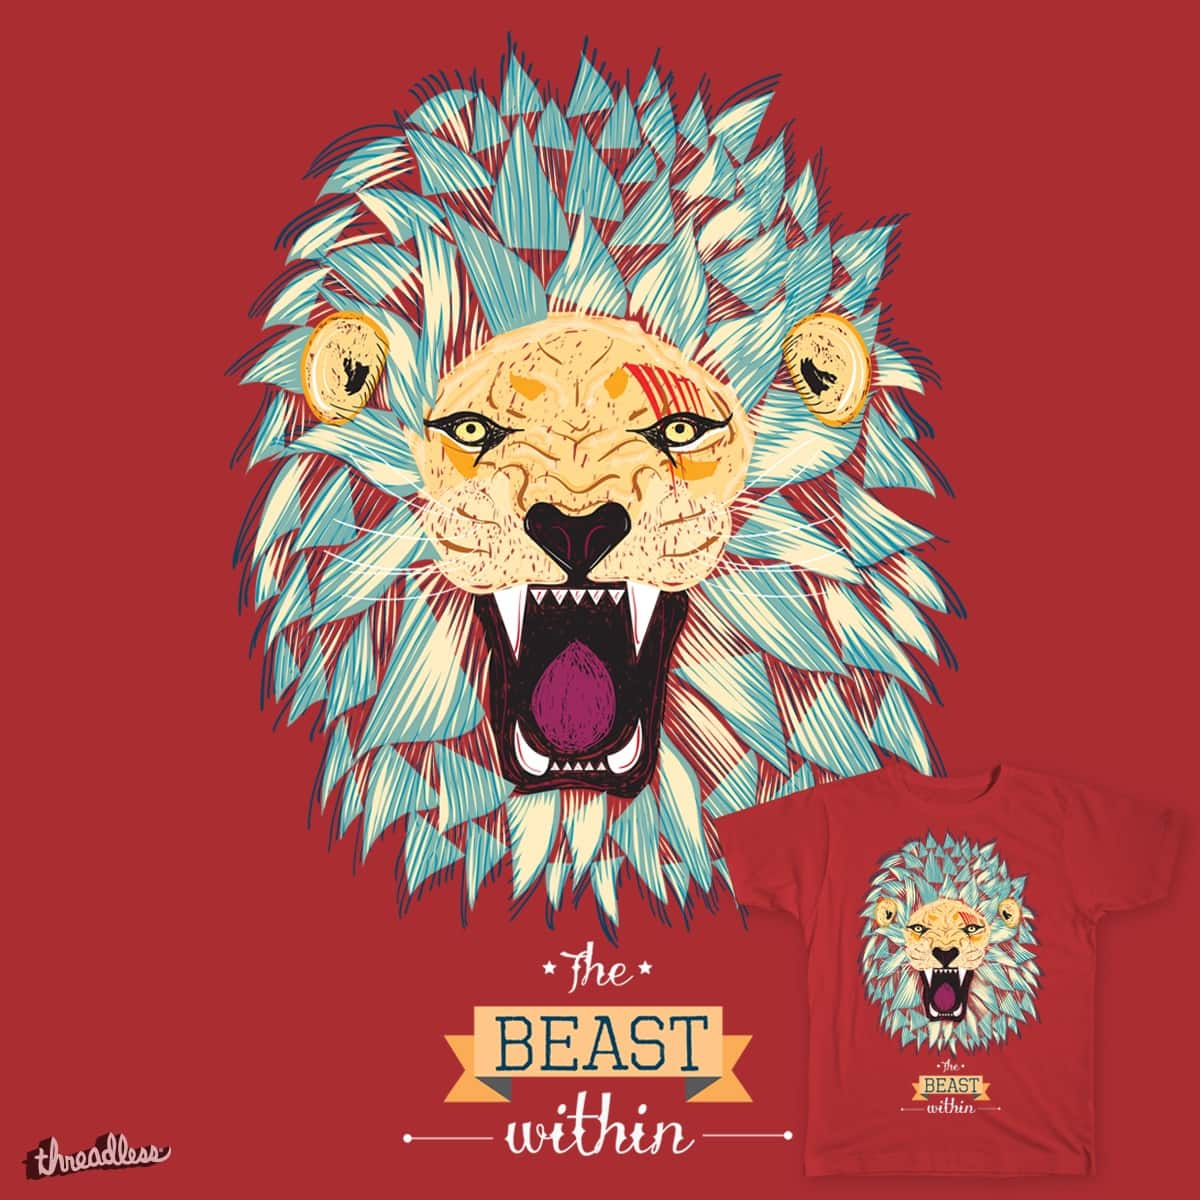 The Beast Within by tempt92 on Threadless